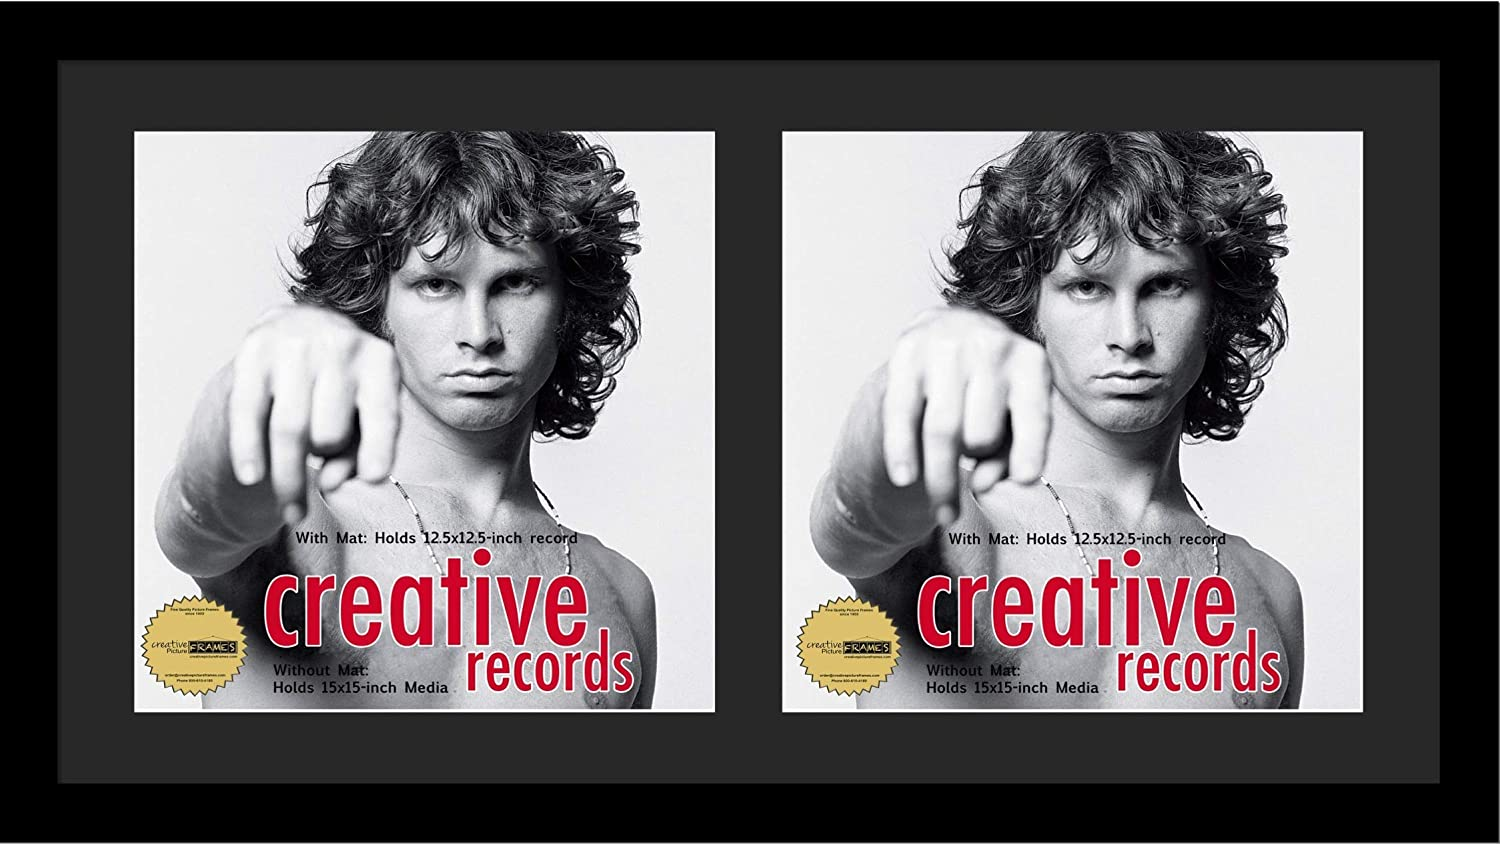 Creative Picture Frames 16x30-inch Double Record Album Cover Frame with Black Matting Displays 2 Individual LP Covers